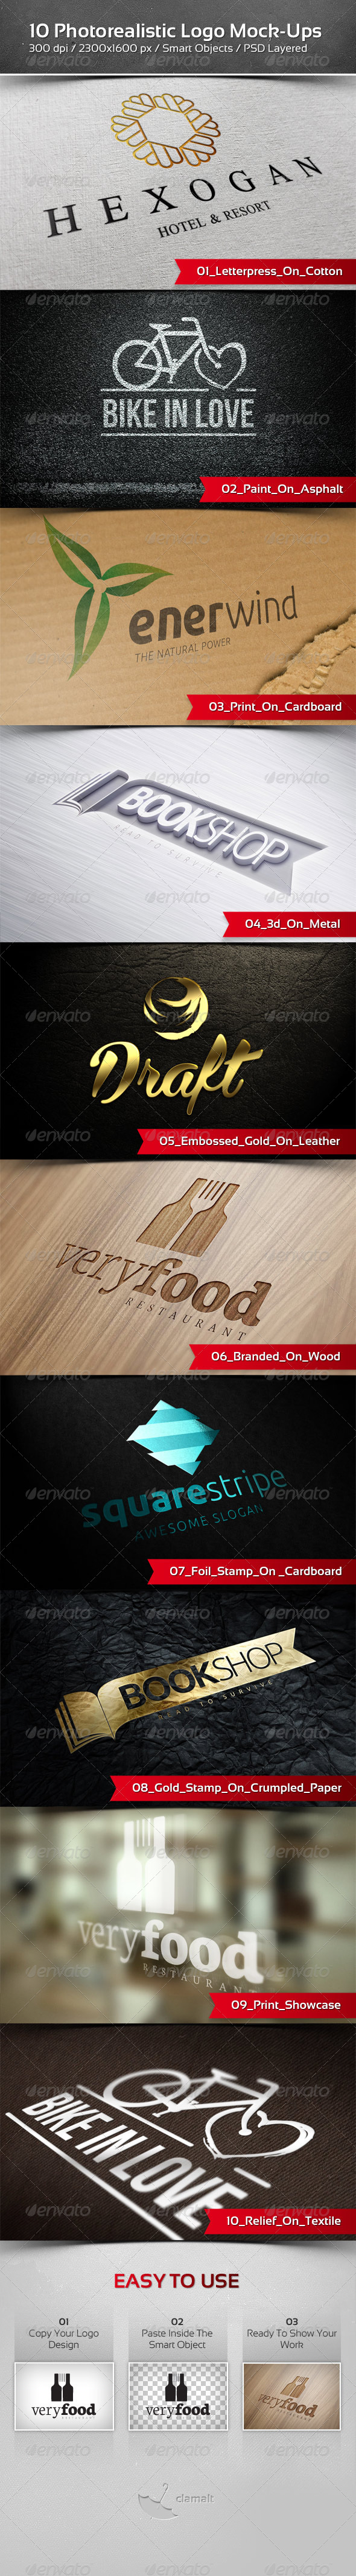 10 Photorealistic Logo Mock-Ups - Product Mock-Ups Graphics